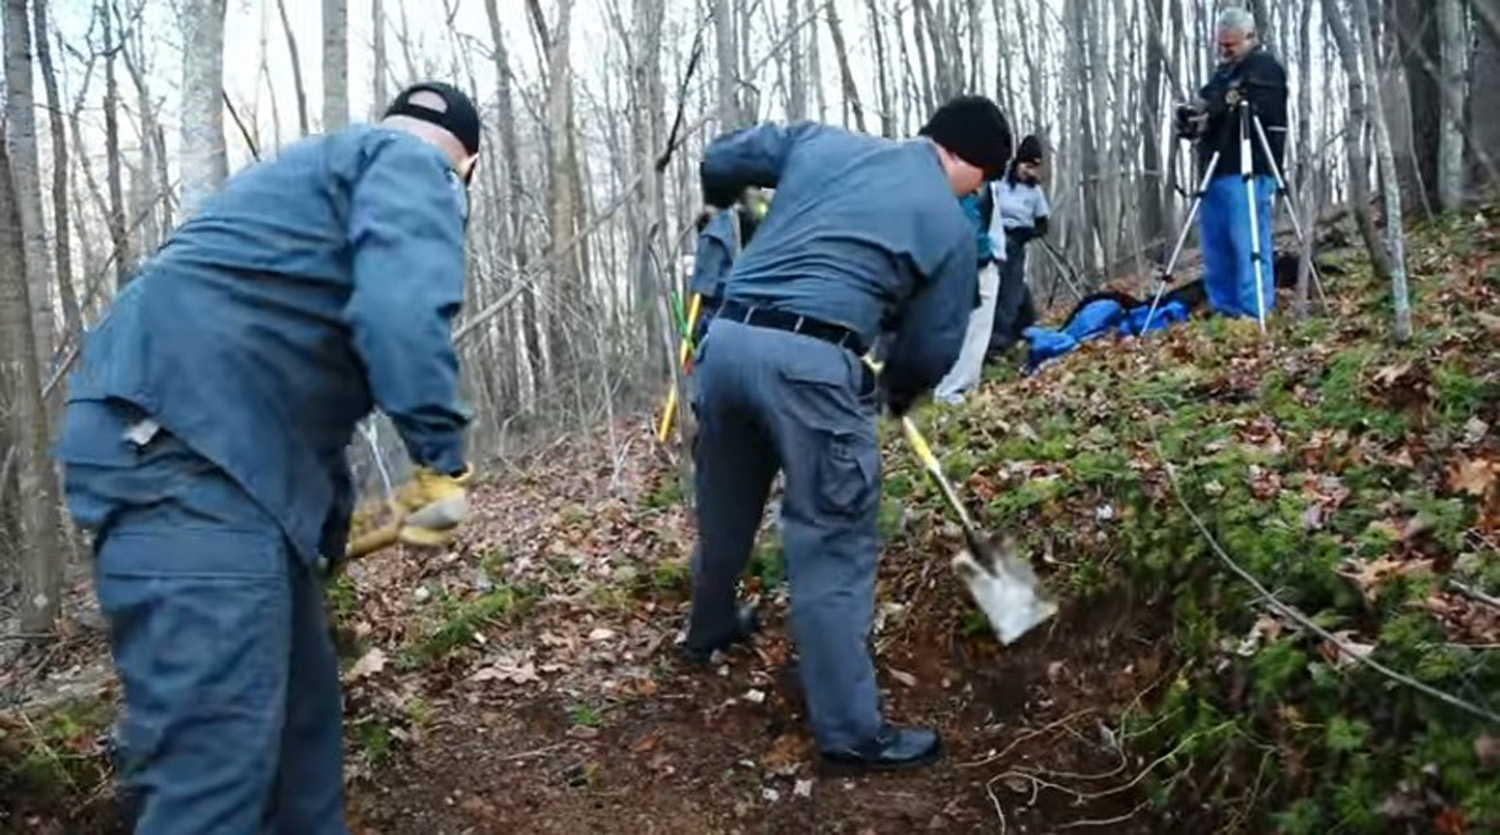 Two bodies were exhumed in 2014, but once NamUs conducted DNA testing the results revealed neither body was a match to Blair-Adams. Photo provided by Reveal News